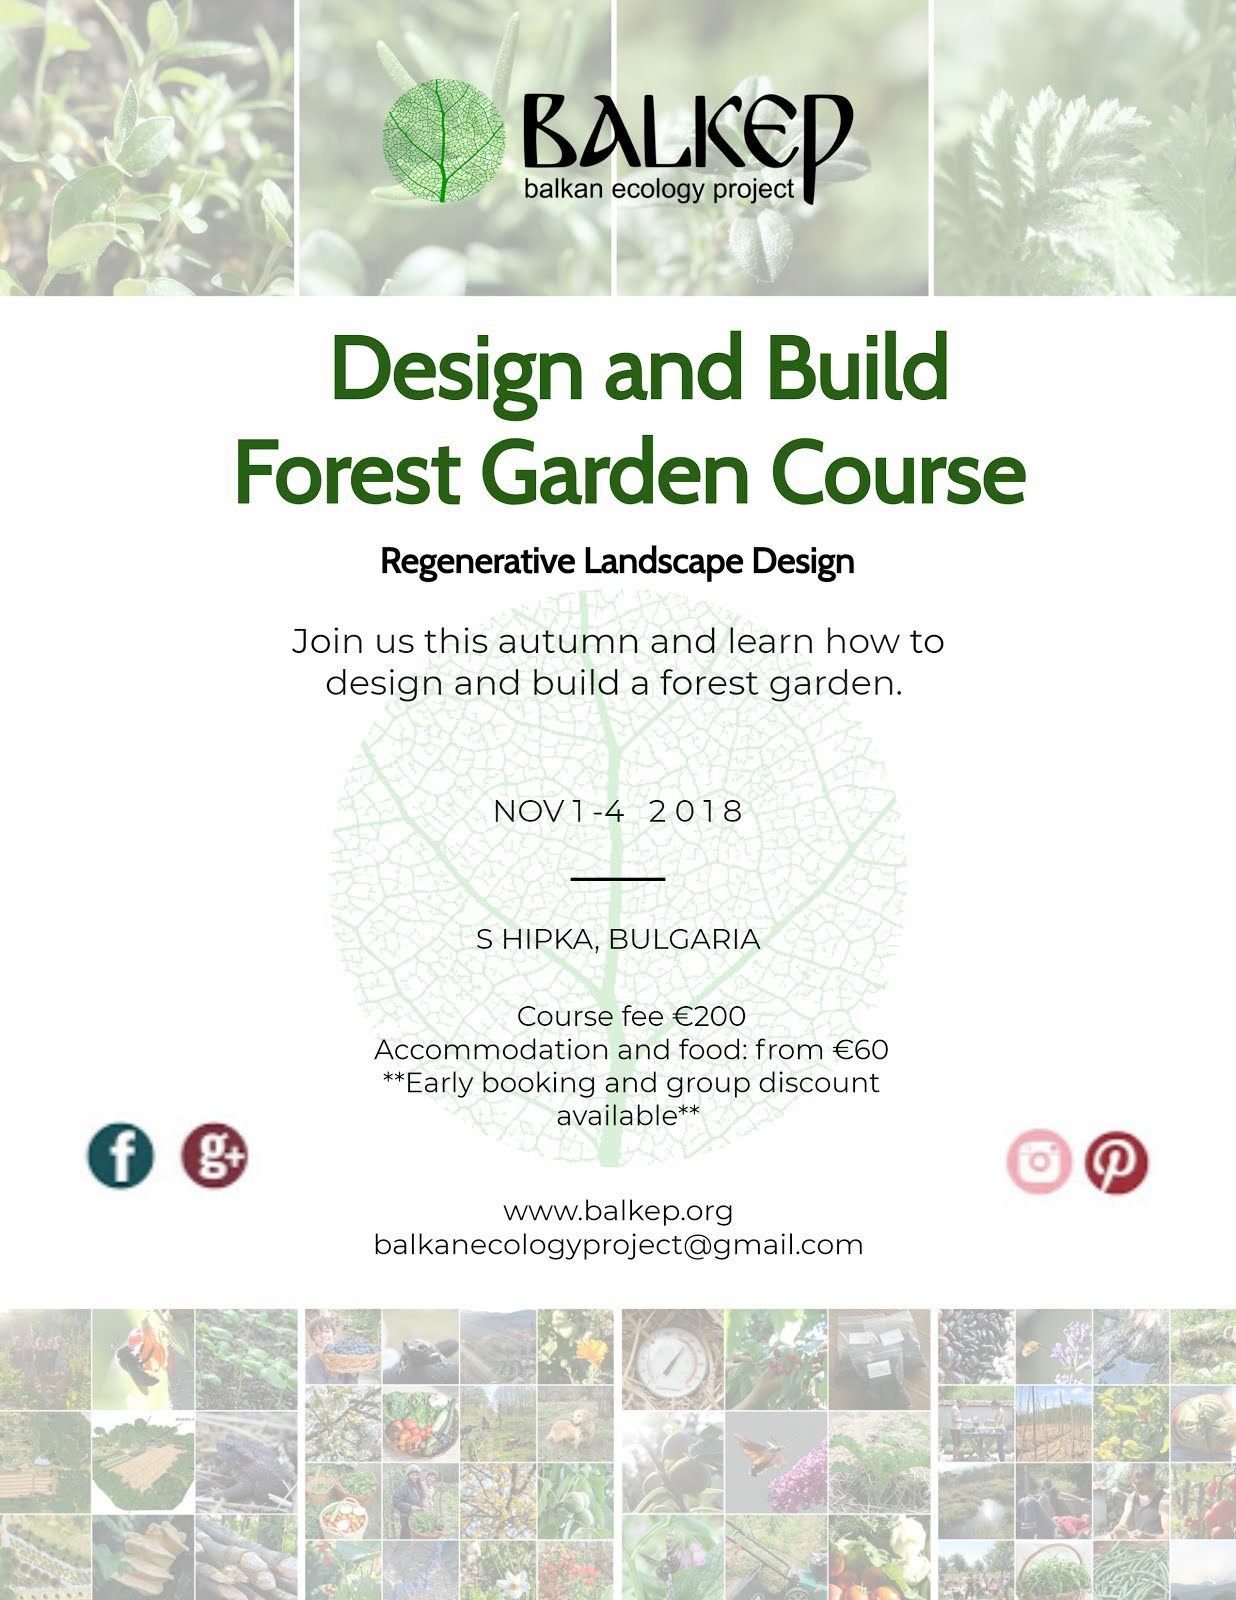 Design and Build Forest Garden Course